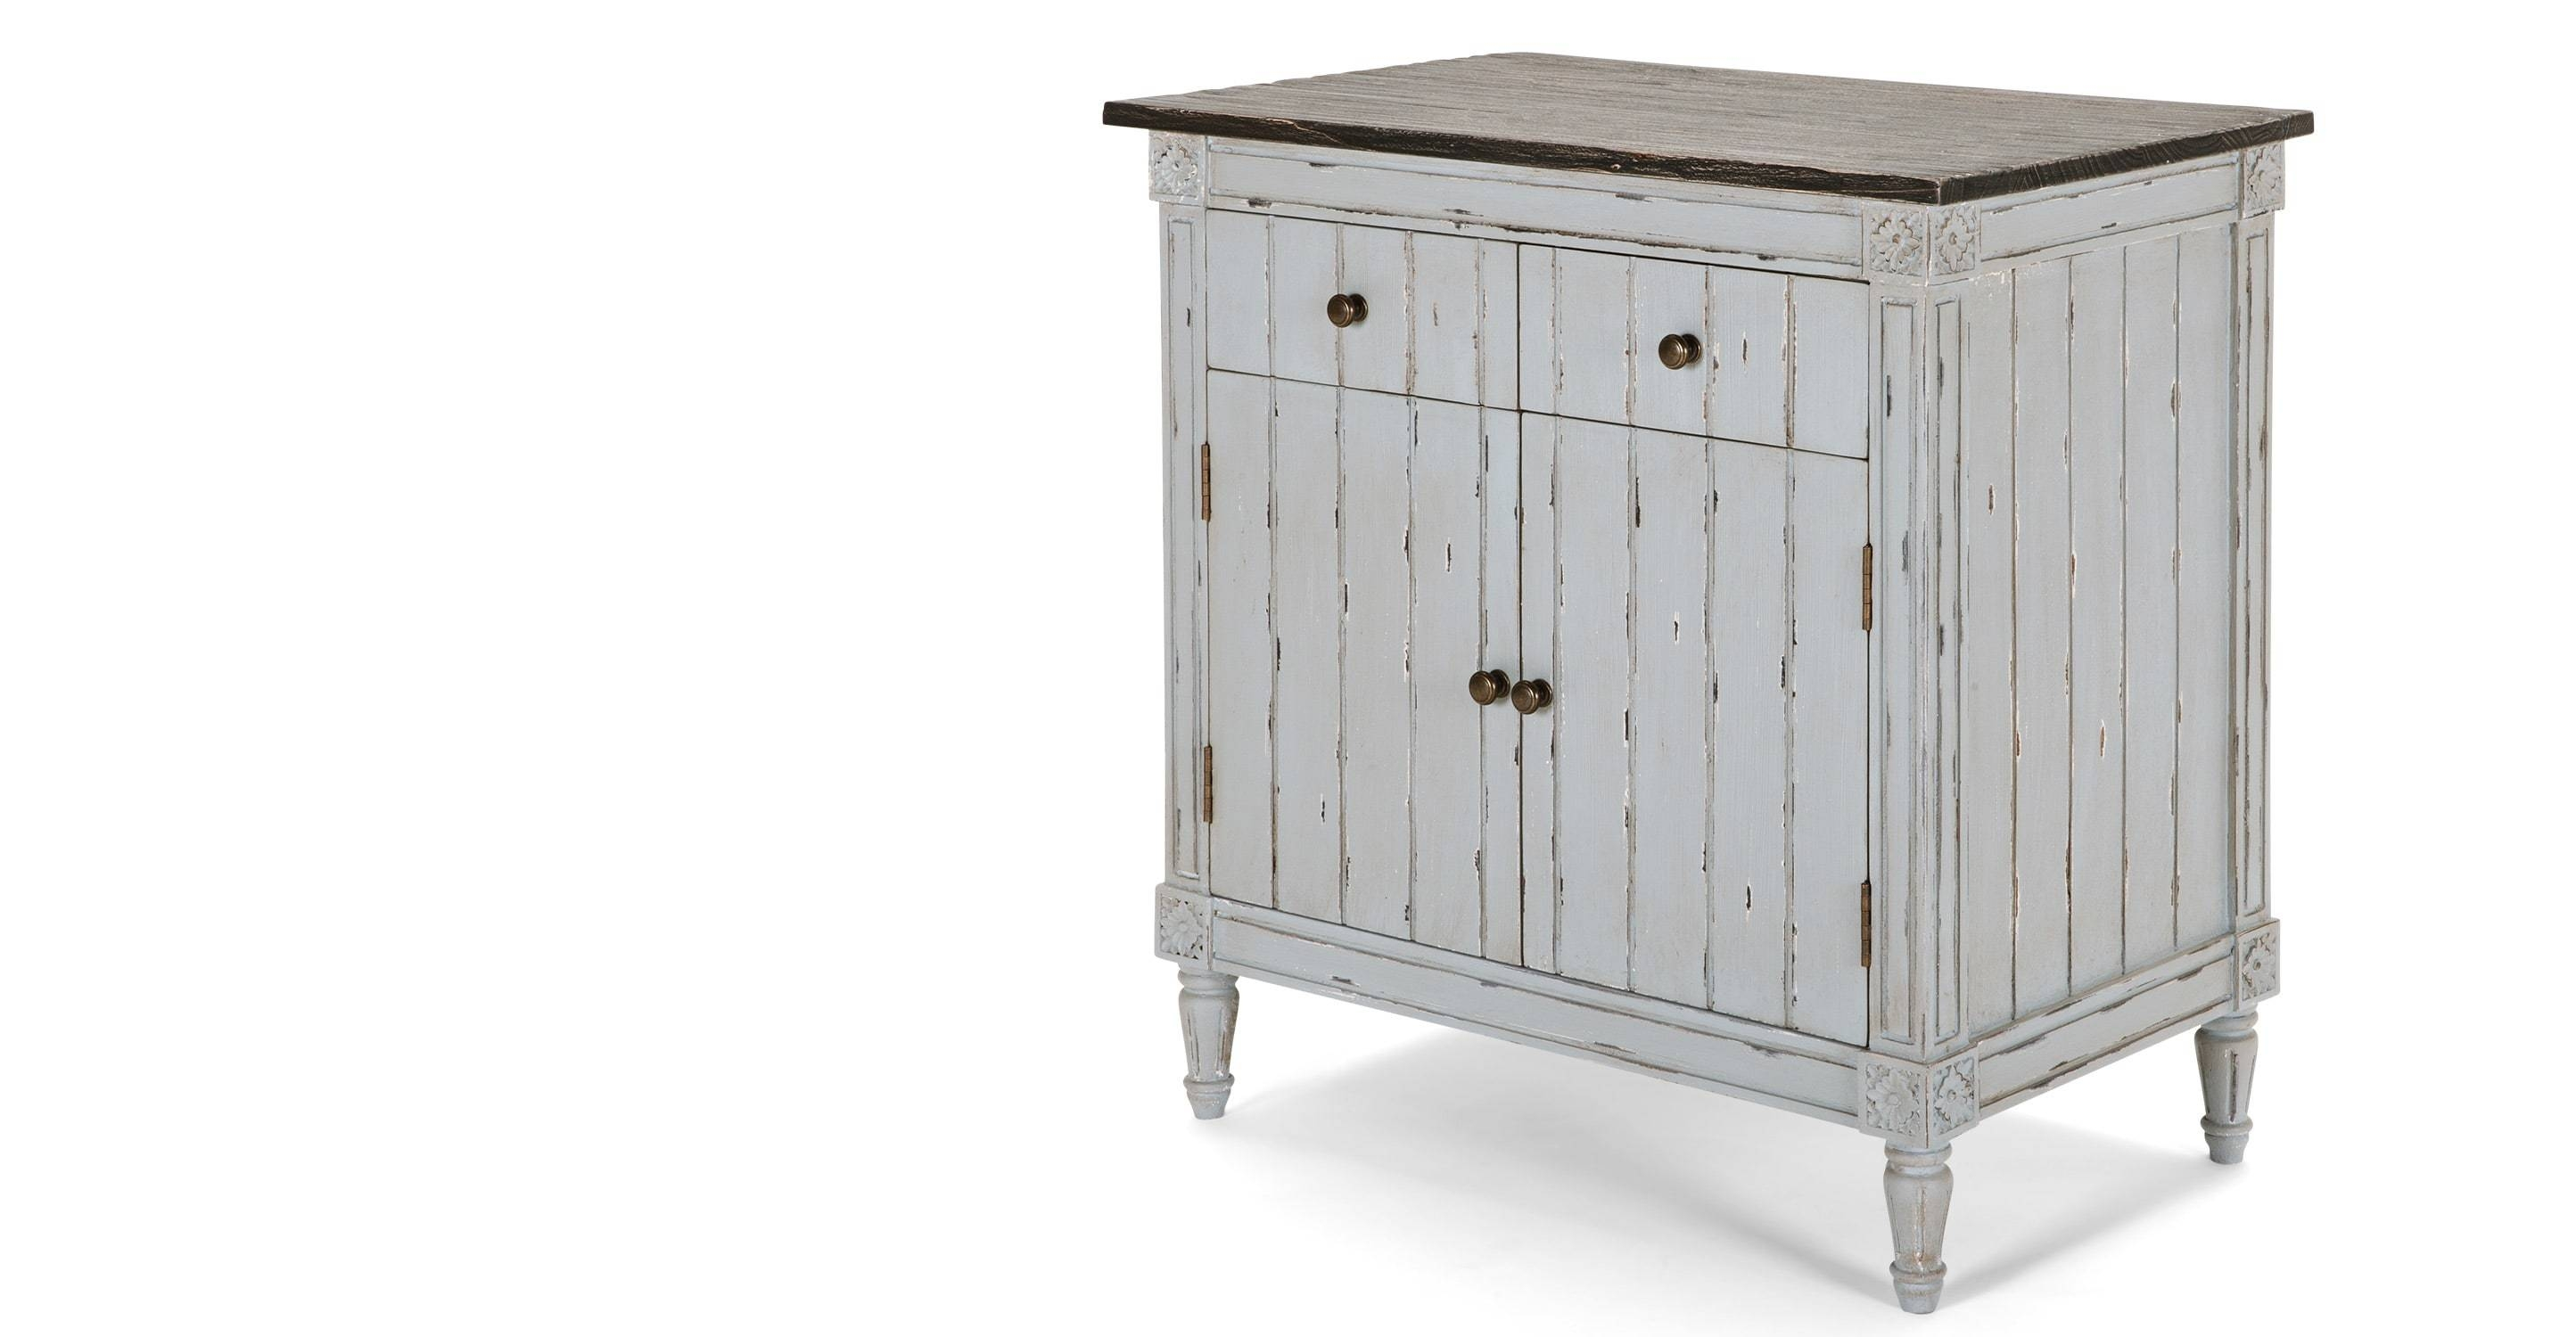 Furniture: Kitchen Sideboards | Cherry Sideboard | Distressed Pertaining To White Distressed Sideboards (View 6 of 15)